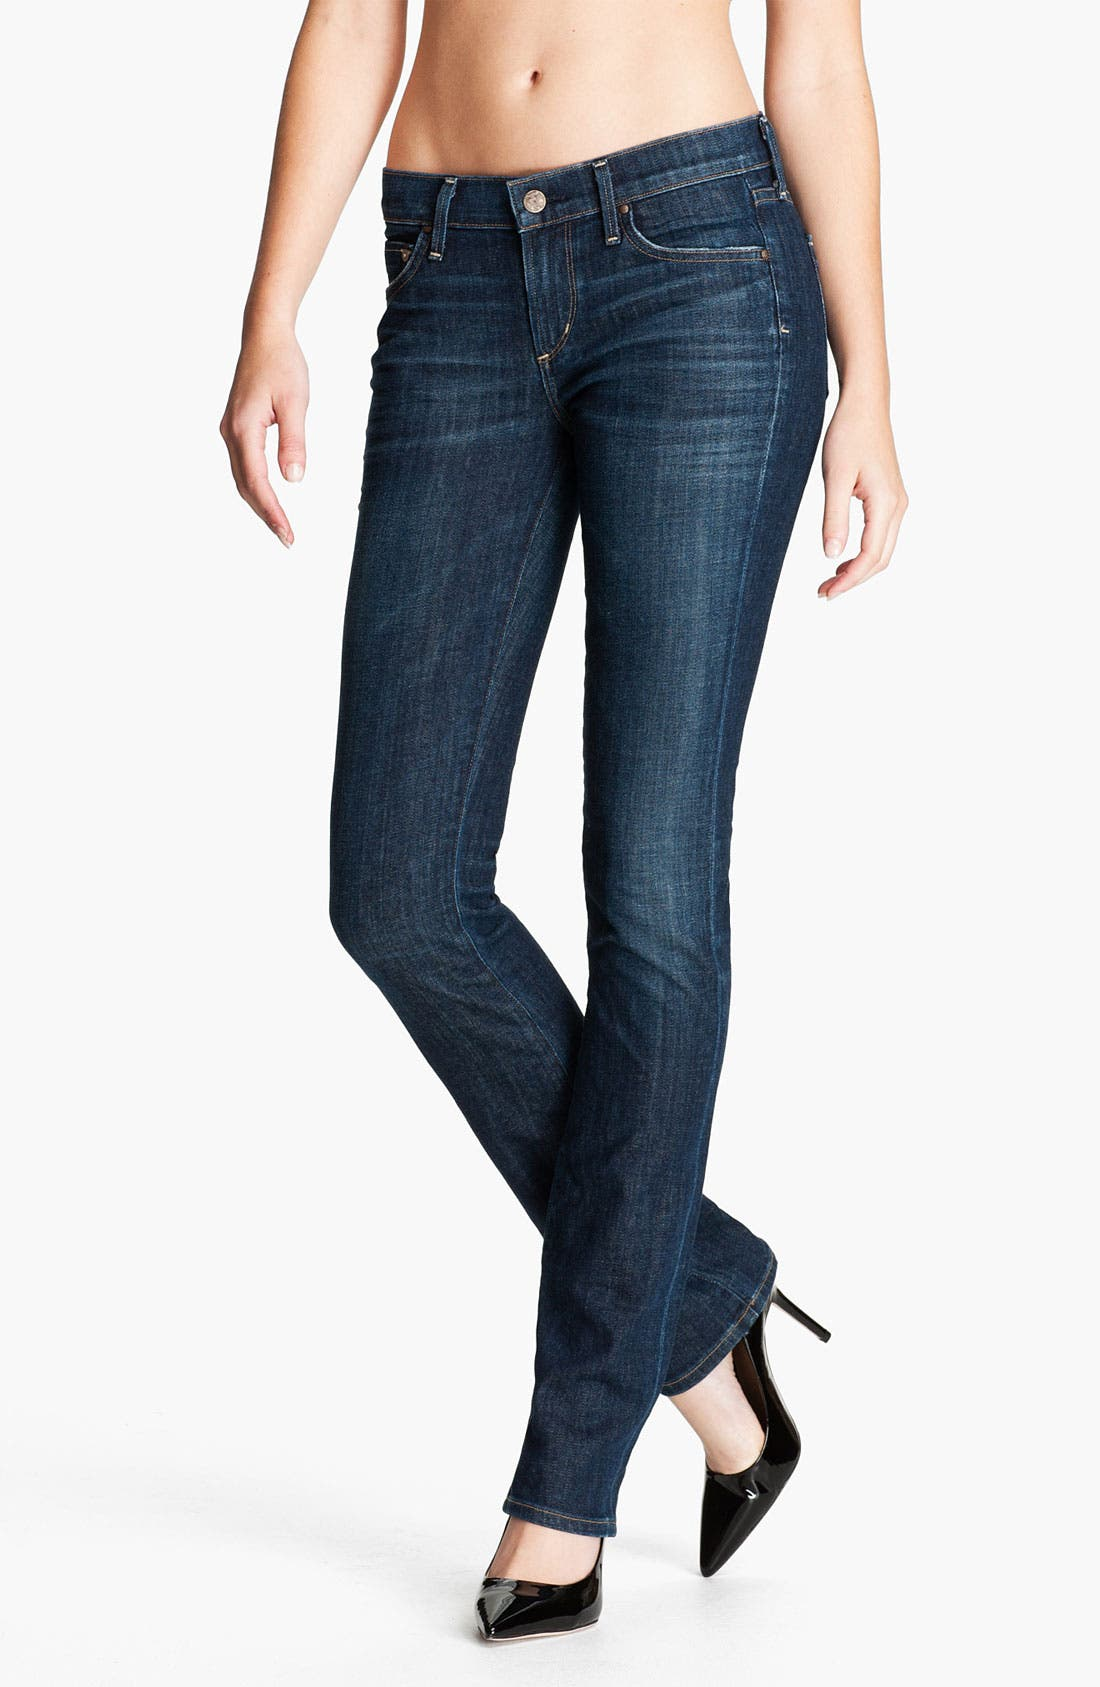 Alternate Image 1 Selected - Citizens of Humanity 'Ava' Straight Leg Stretch Jeans (Galaxy)